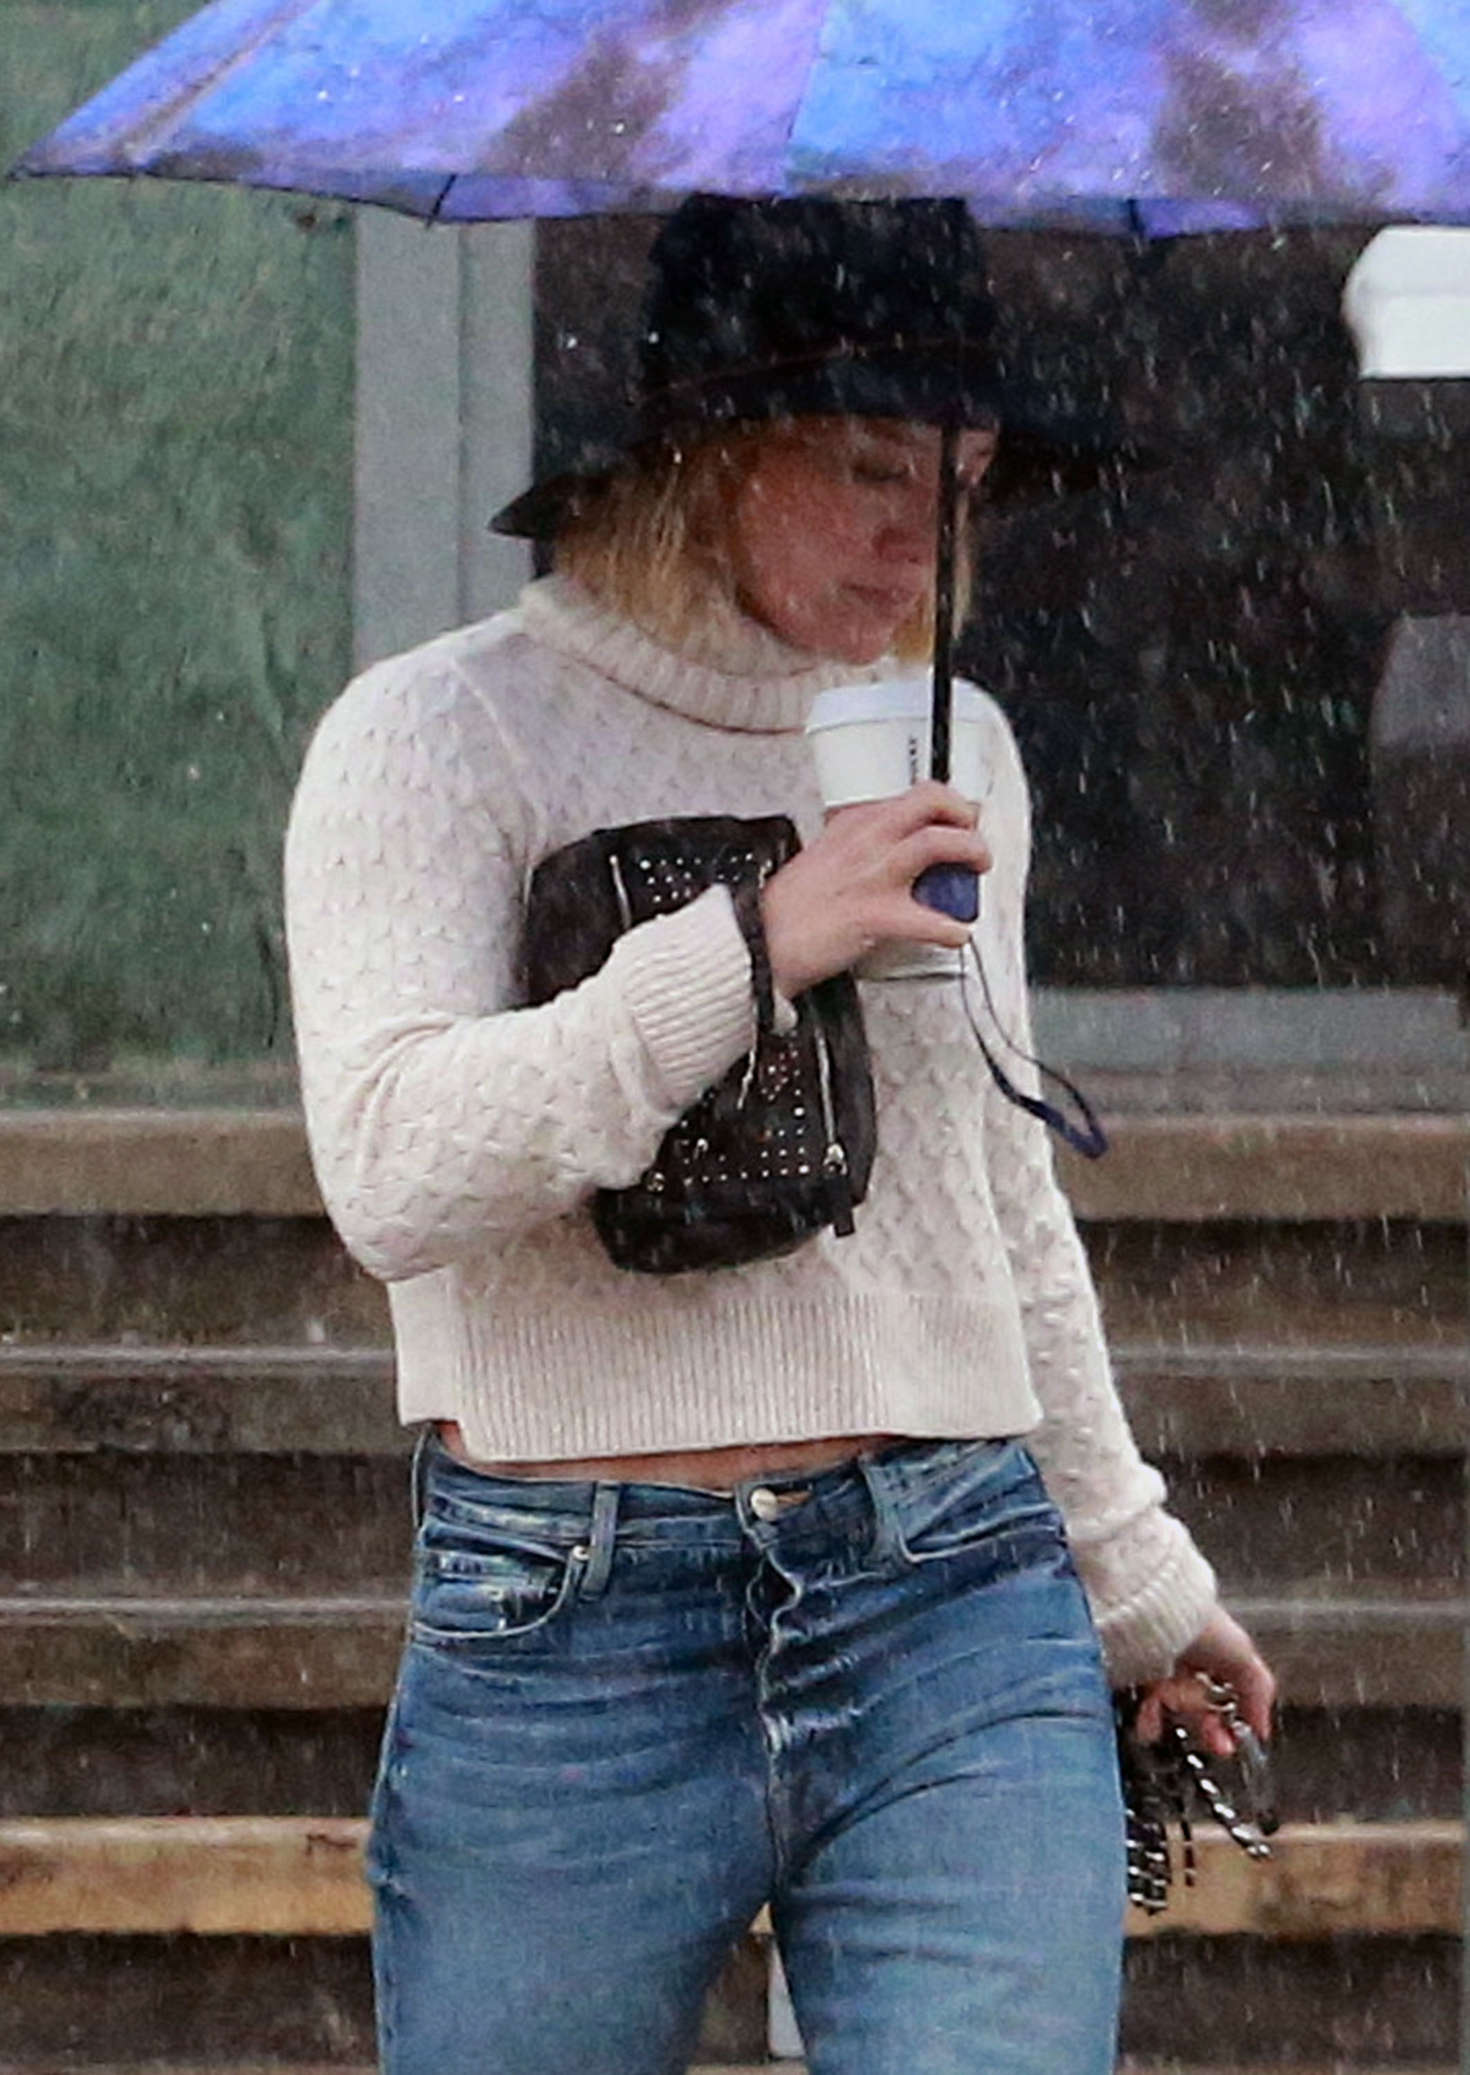 Hilary Duff in Jeans out on a rainy day in Los Angeles